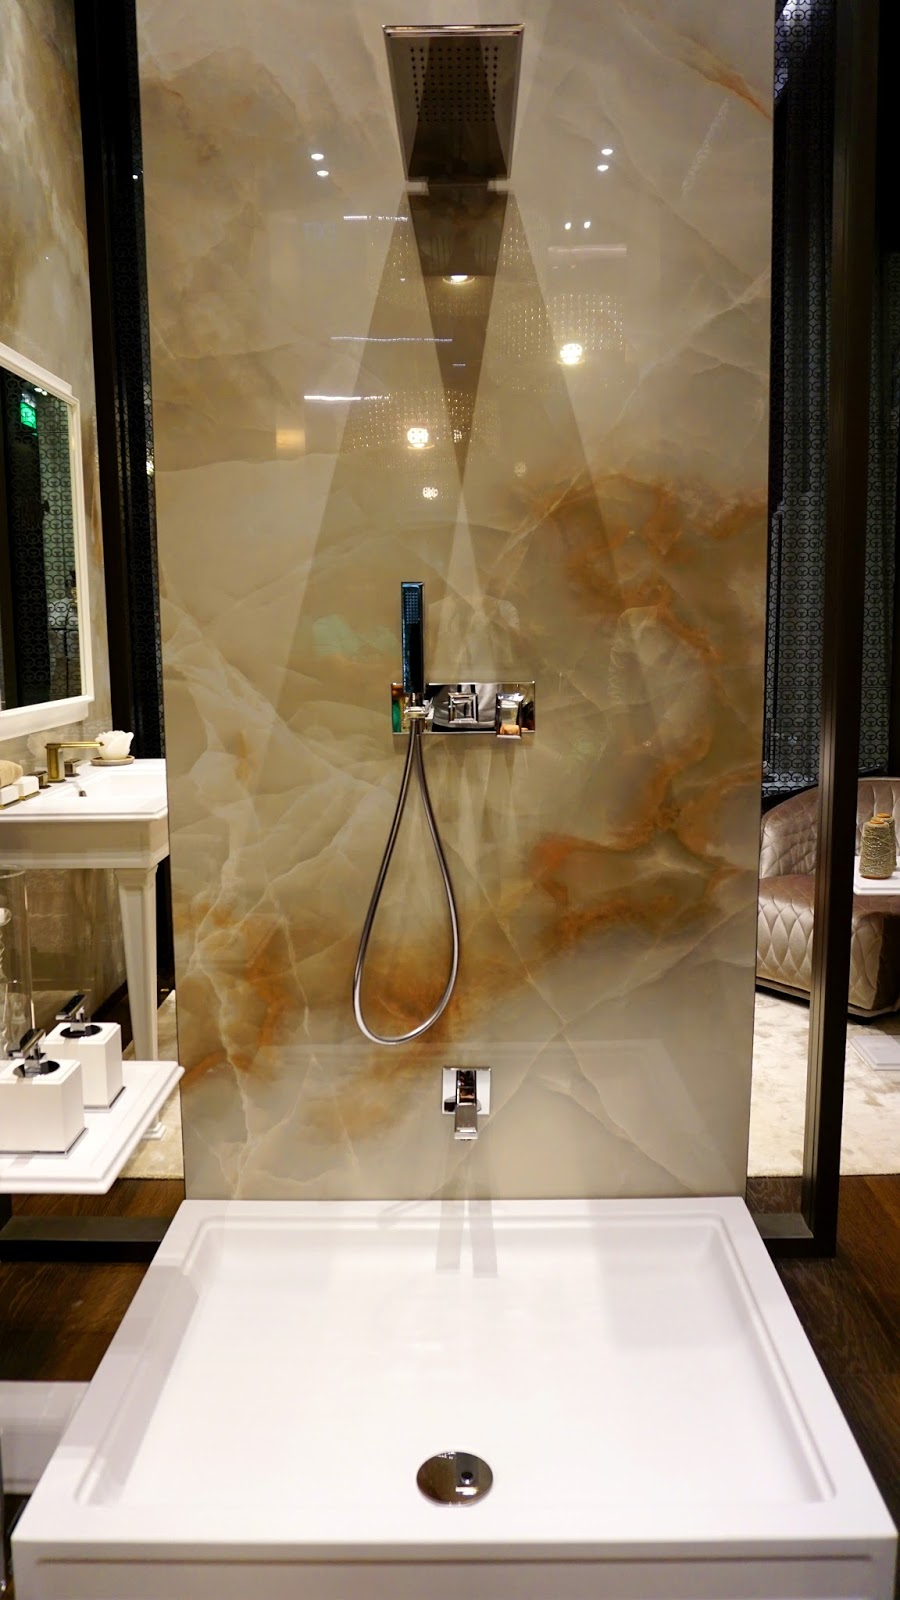 gessi oxygene led bathroom color faucet new kitchen just faucets taps